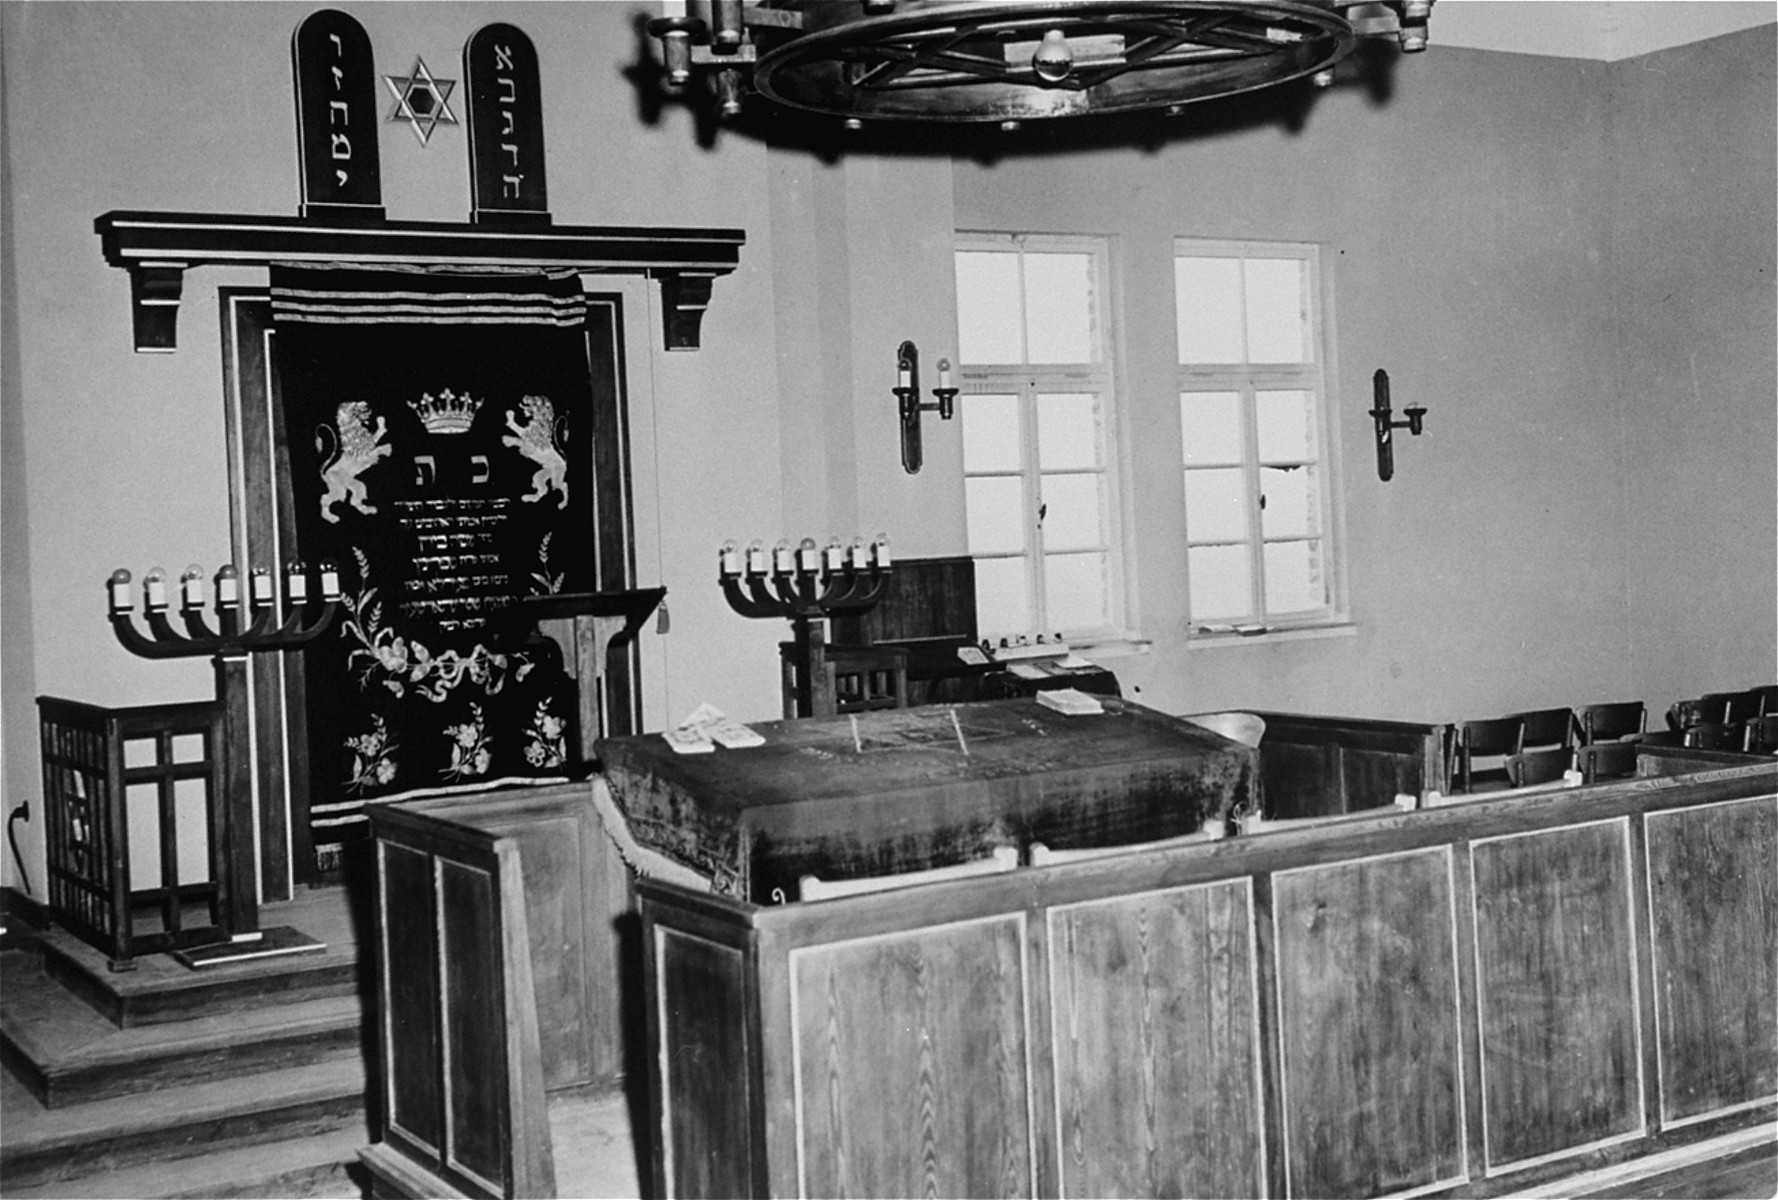 The sanctuary of a synagogue in Hanau, Germany.